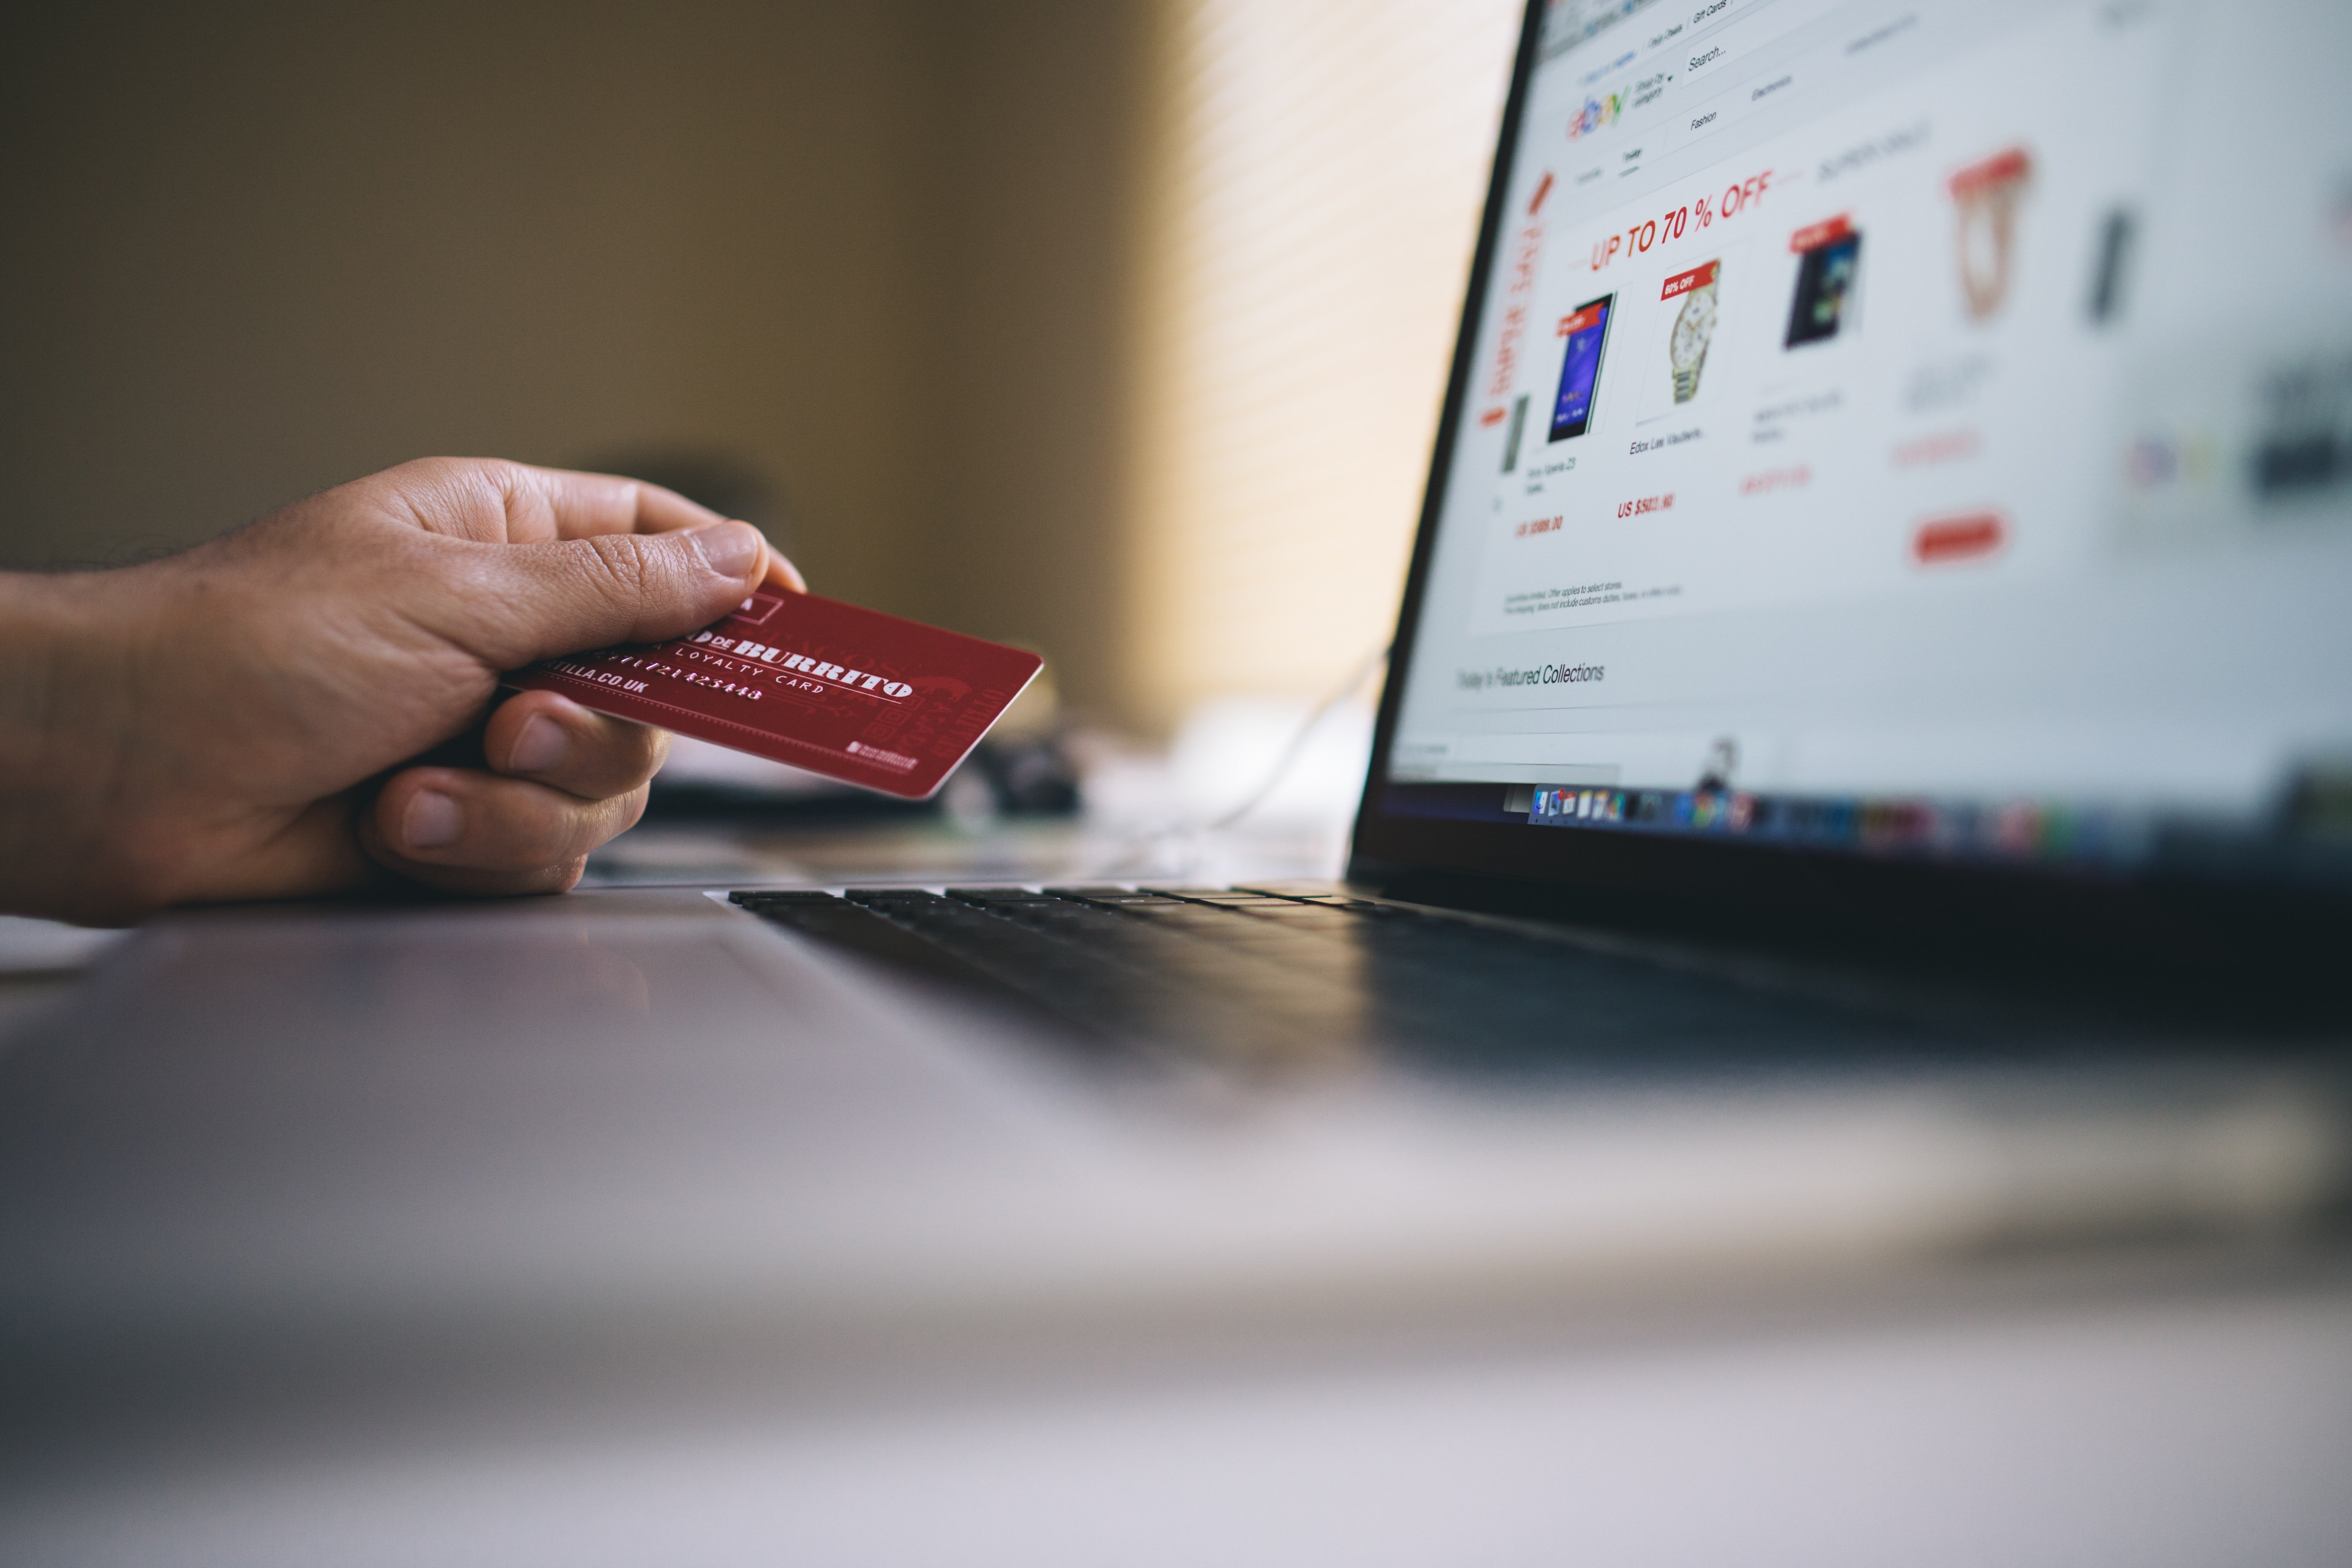 Credit card ready to purchase online